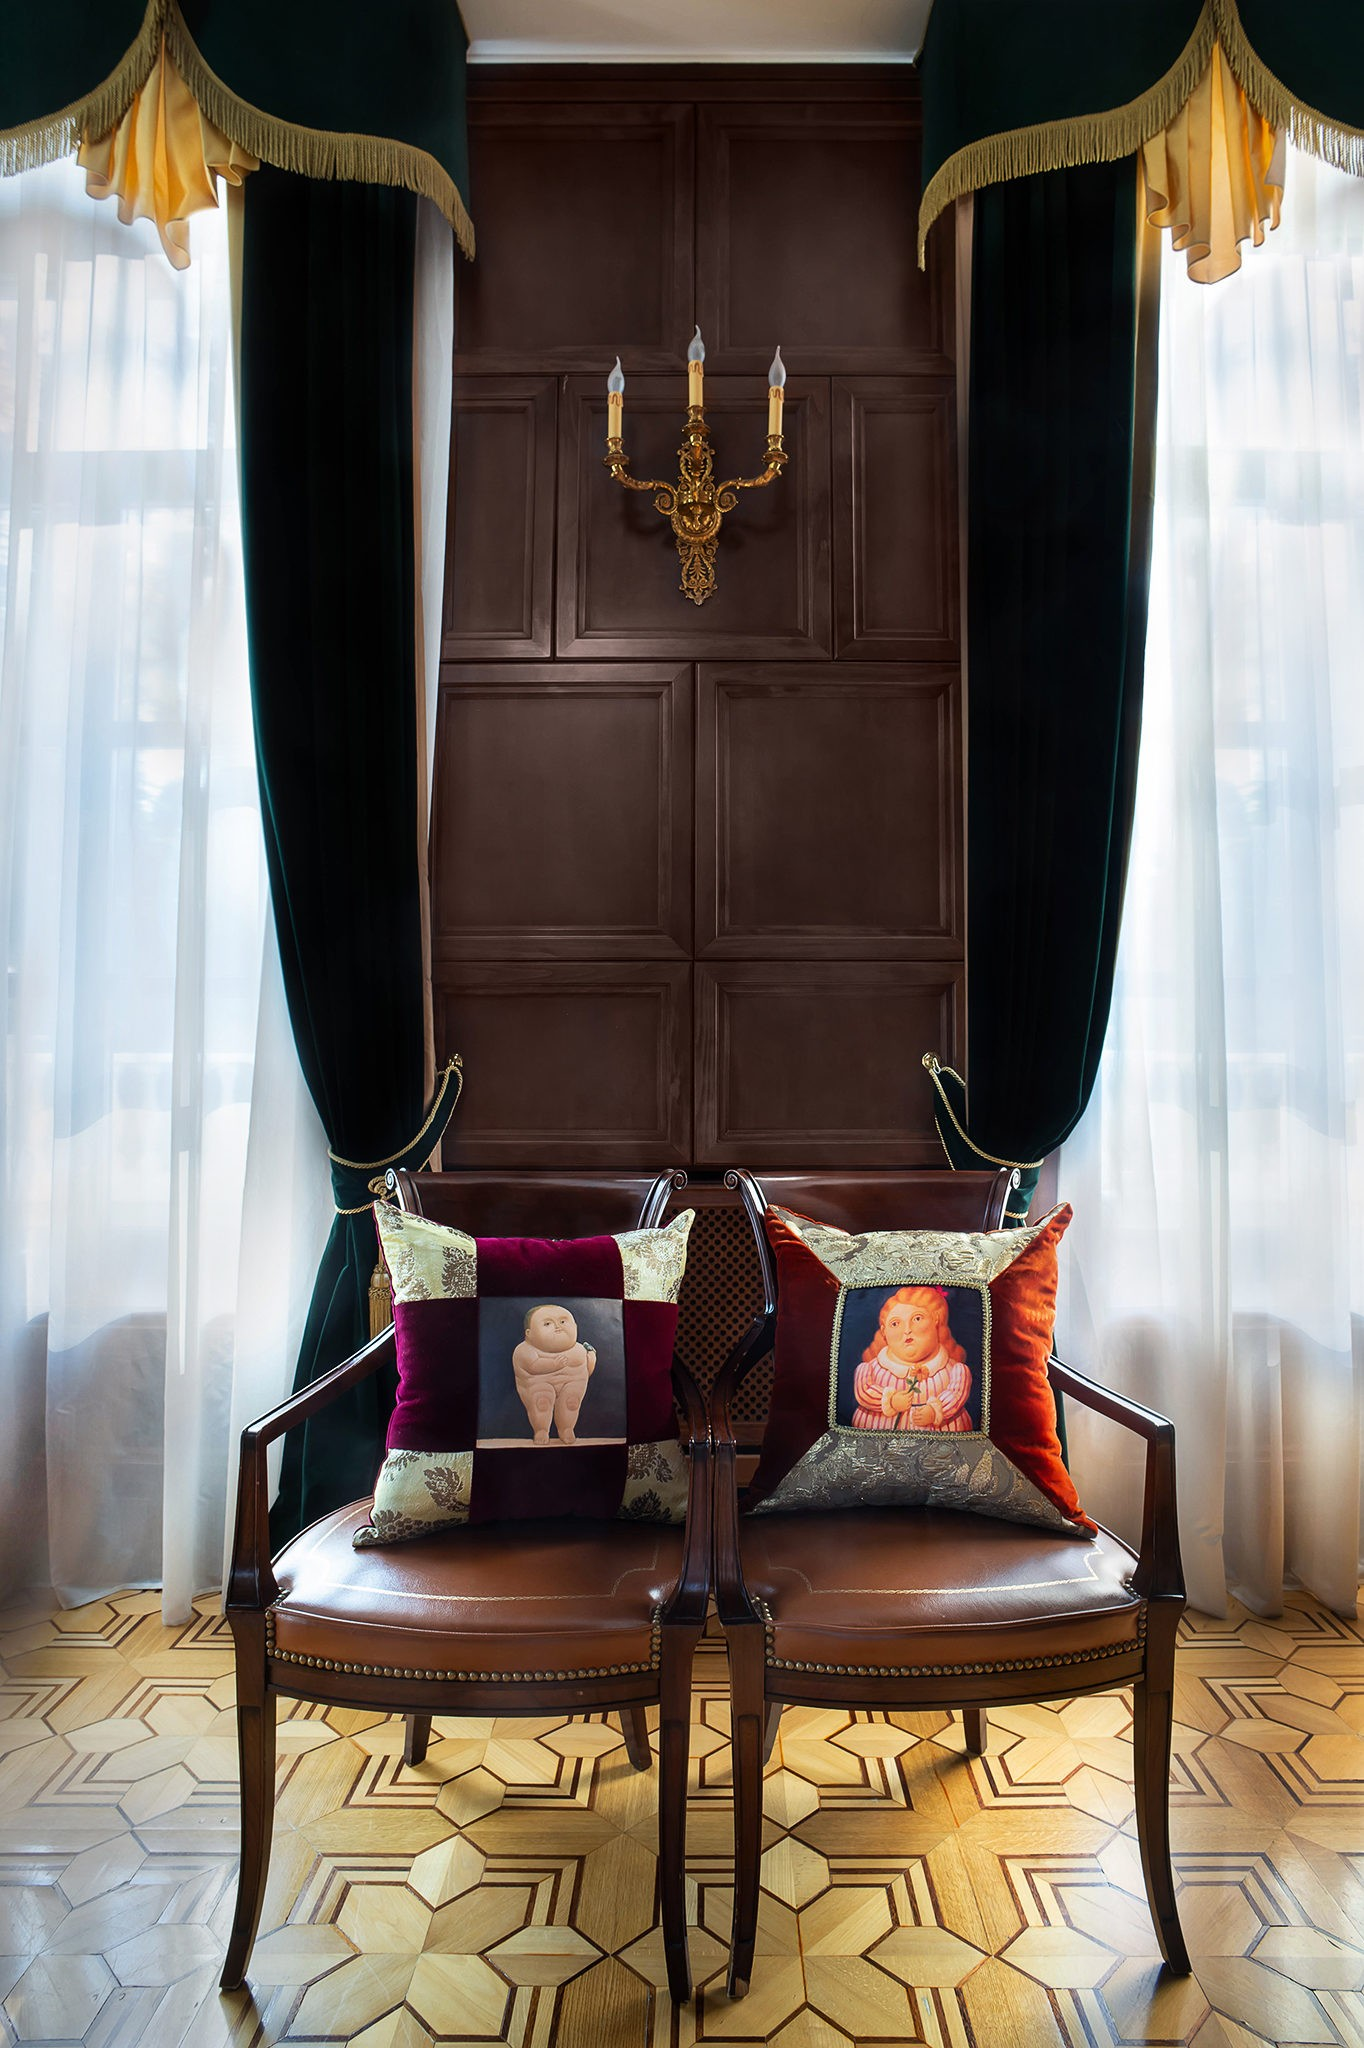 Interior photography in the villa. Pillows on armchairs and chairs. Professional photographer. Moscow.